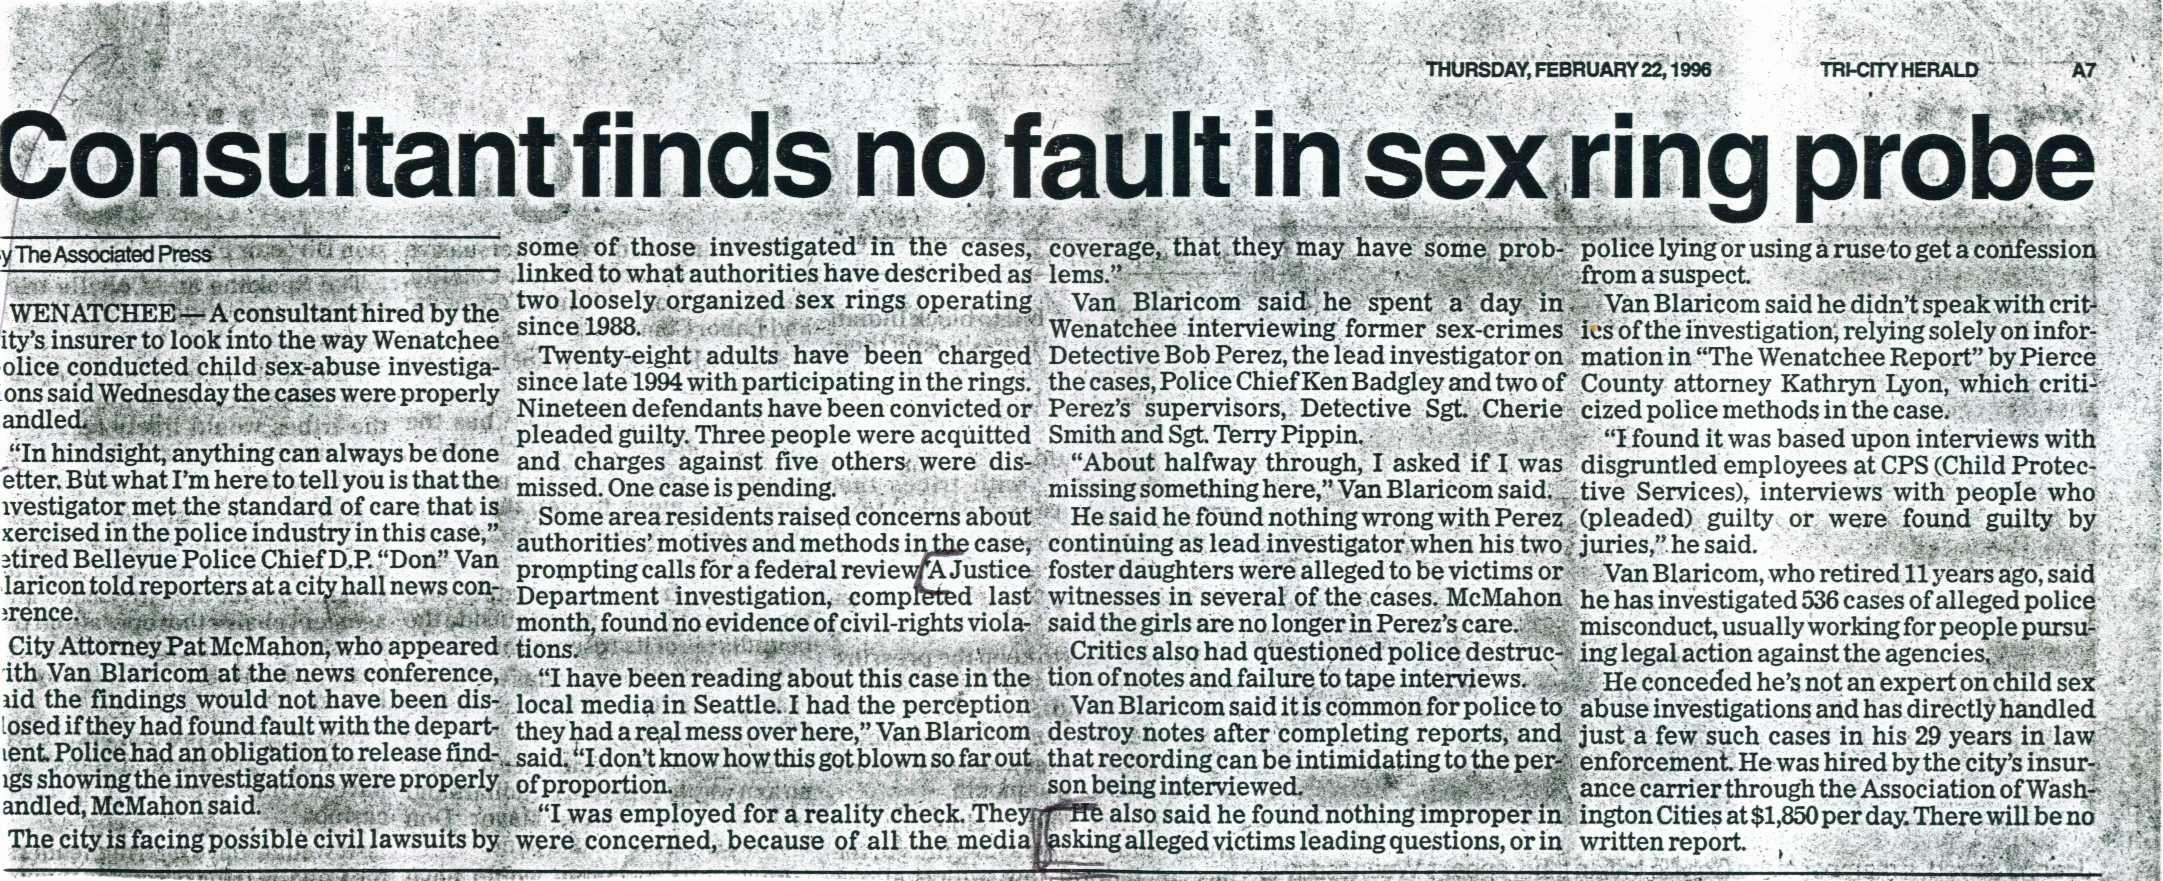 Consultant Finds No Fault in Sex Ring Probe